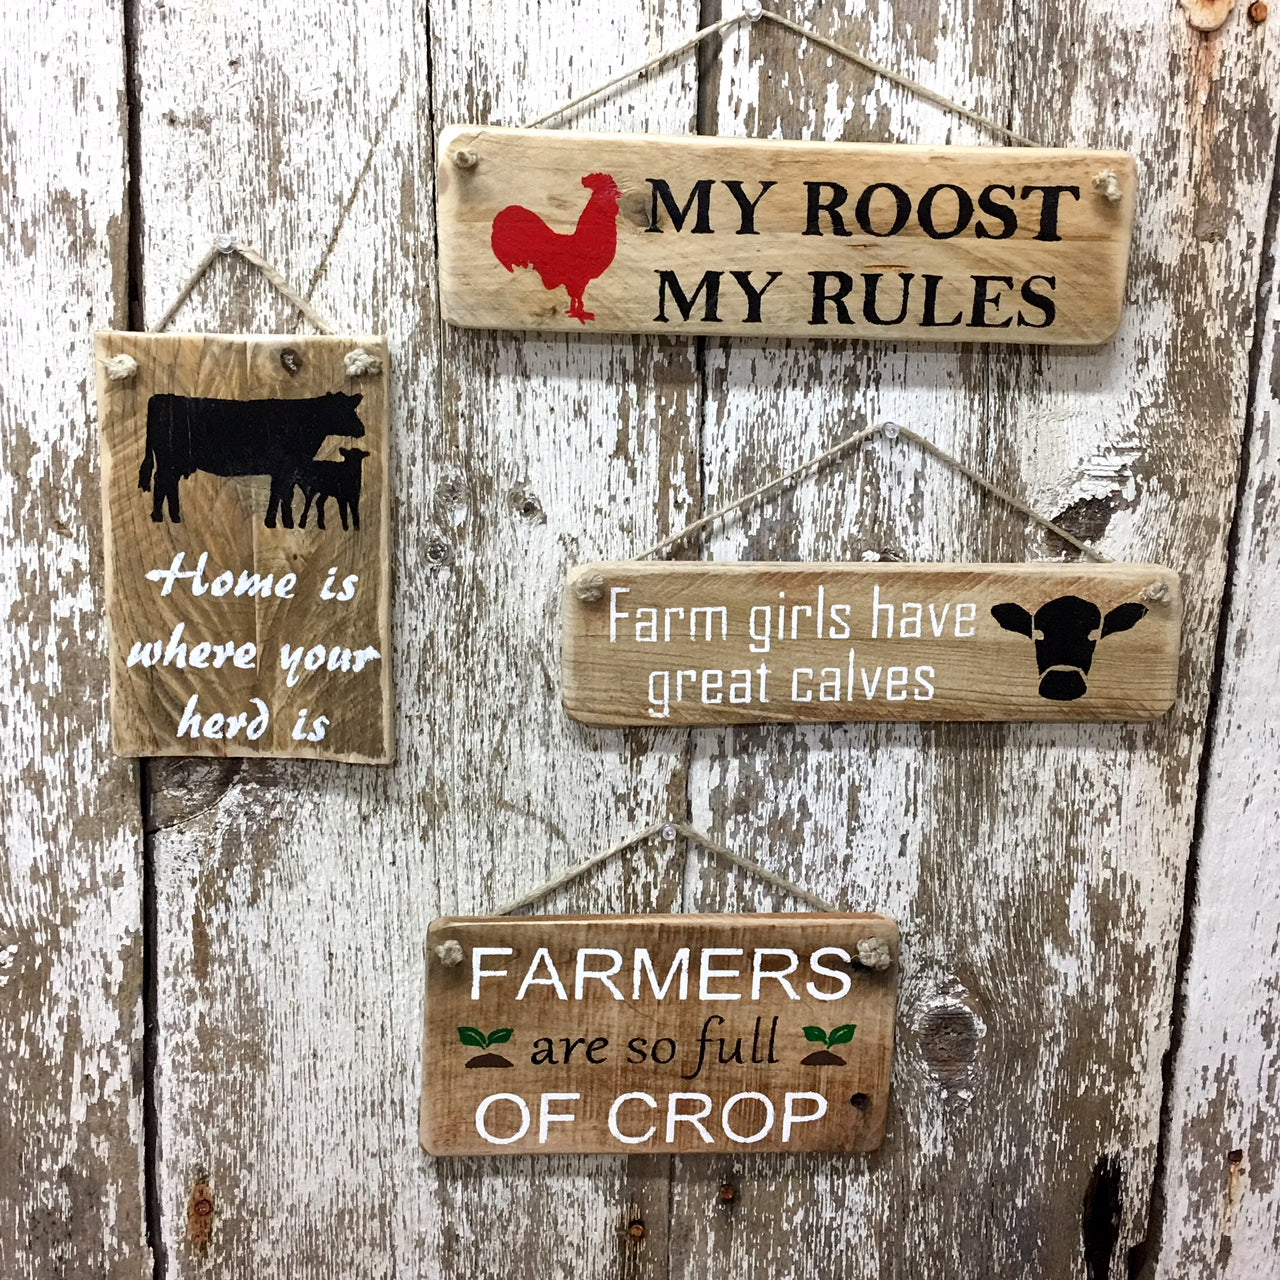 farmer signs - farmers are so full of crop - reclaimed wood sign